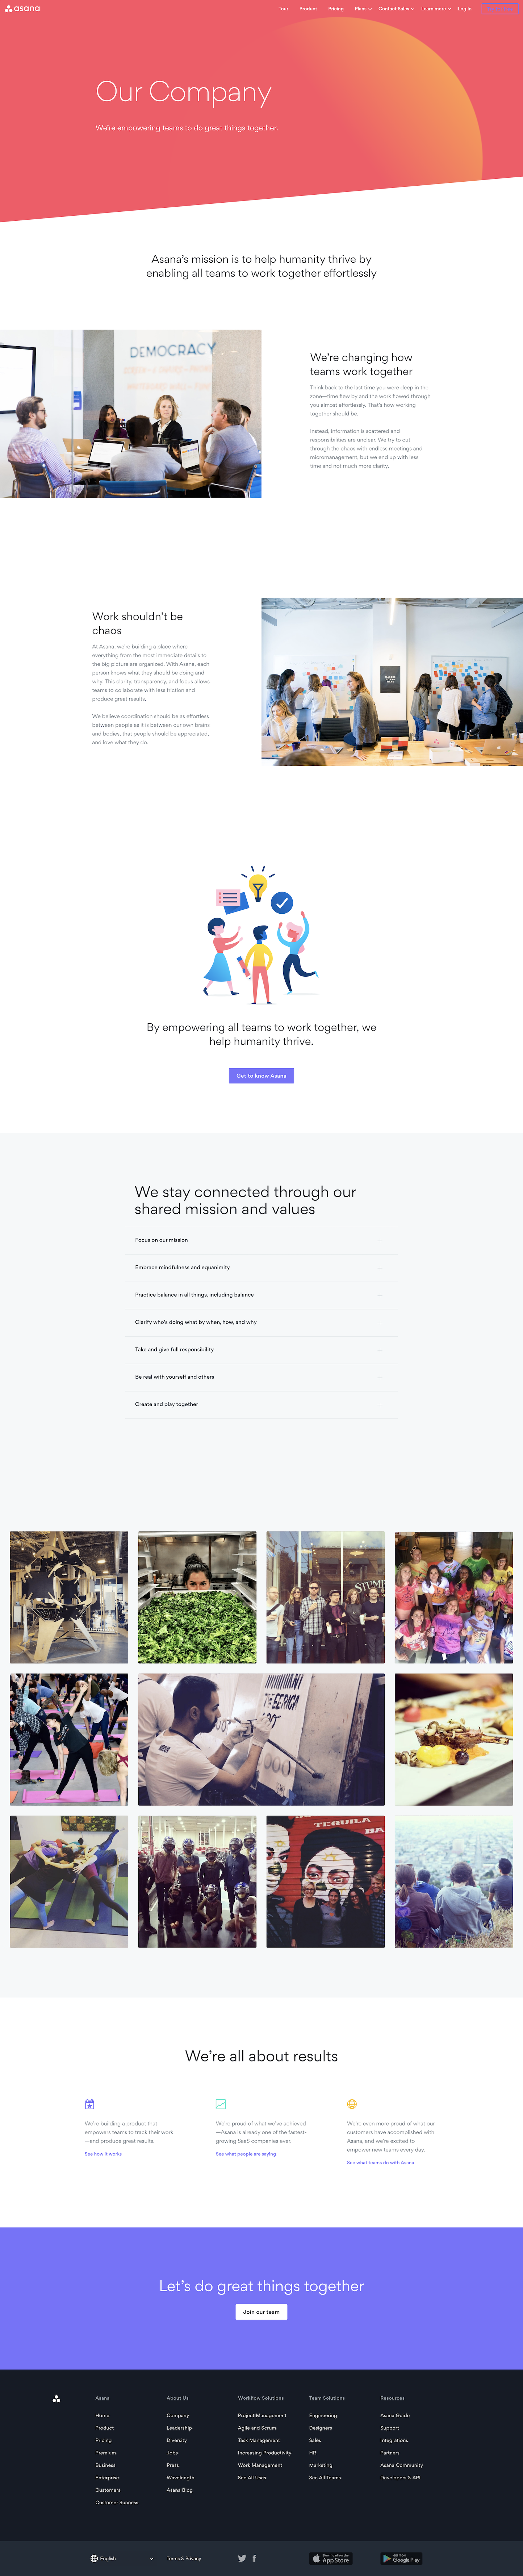 Screenshot of the Company page from the Asana website.